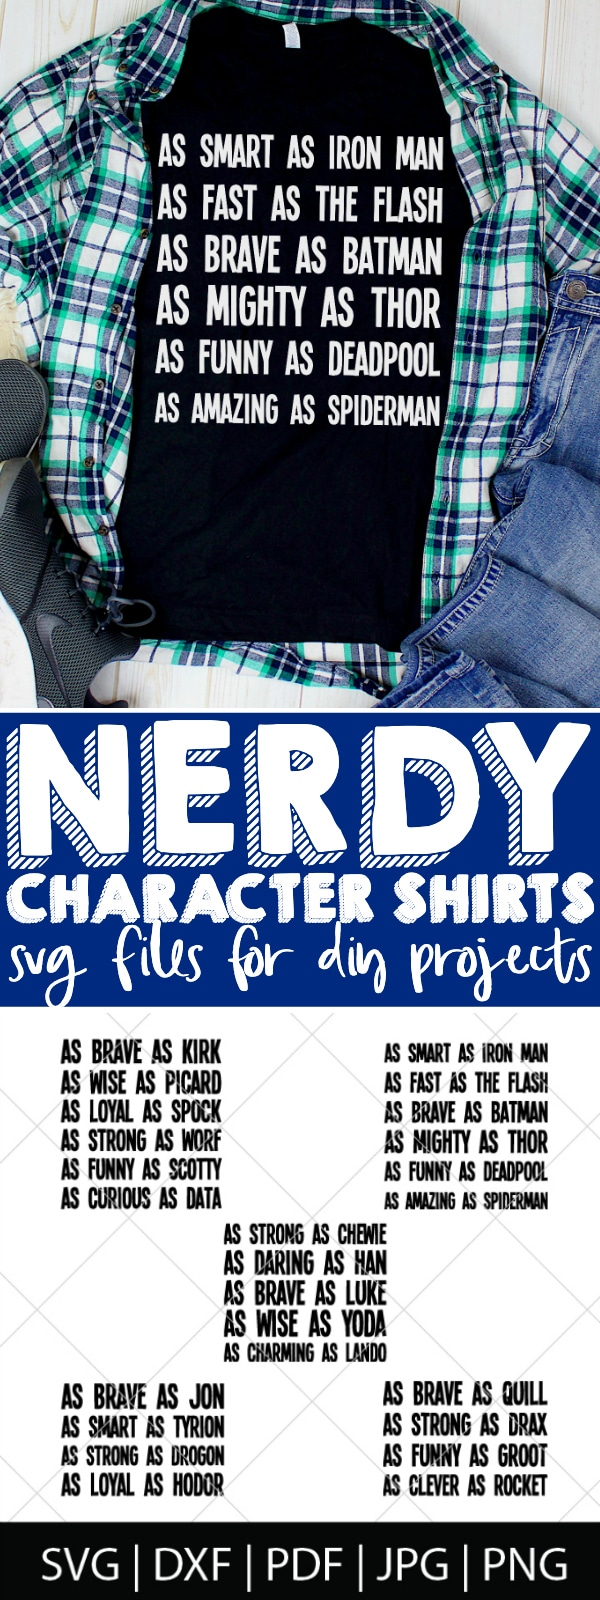 New Nerdy Character Shirts SVG Bundle is full of fun character descriptions celebrating Star Wars, Superheroes, Guardians of the Galaxy, Game of Thrones, and Star Trek!! This Nerdy SVG Bundle is perfect for diy shirts, mugs, glassware, and, especially, for DIY Father's Day Gifts! | THE LOVE NERDS #diyfathersdaygift #nerddad